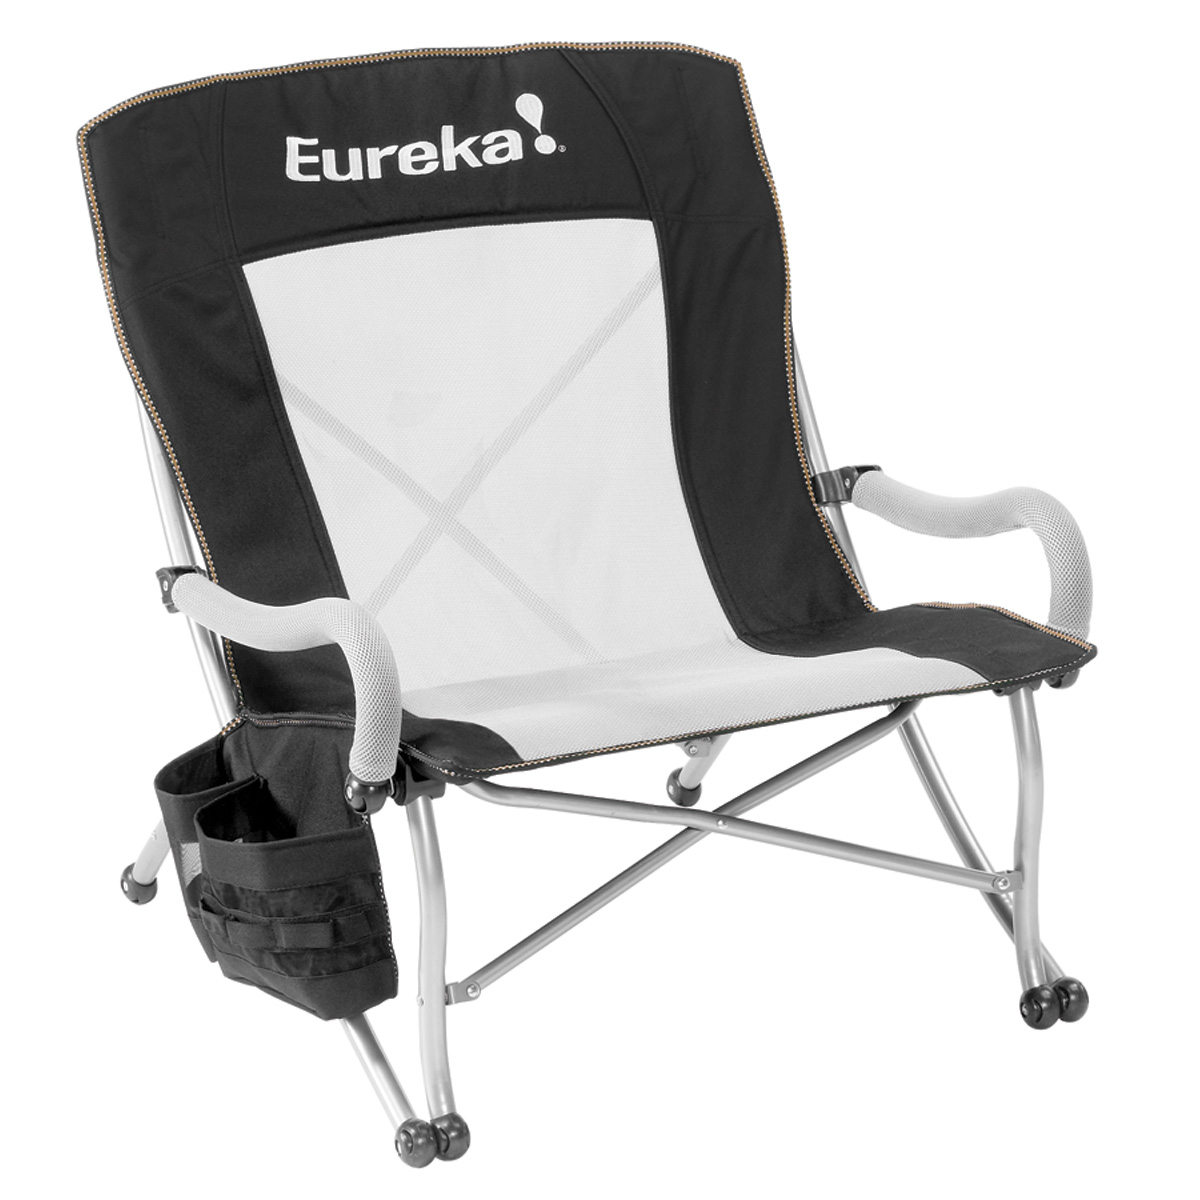 comfortable camping chairs portable fishing chair for boat curvy low rider camp eureka